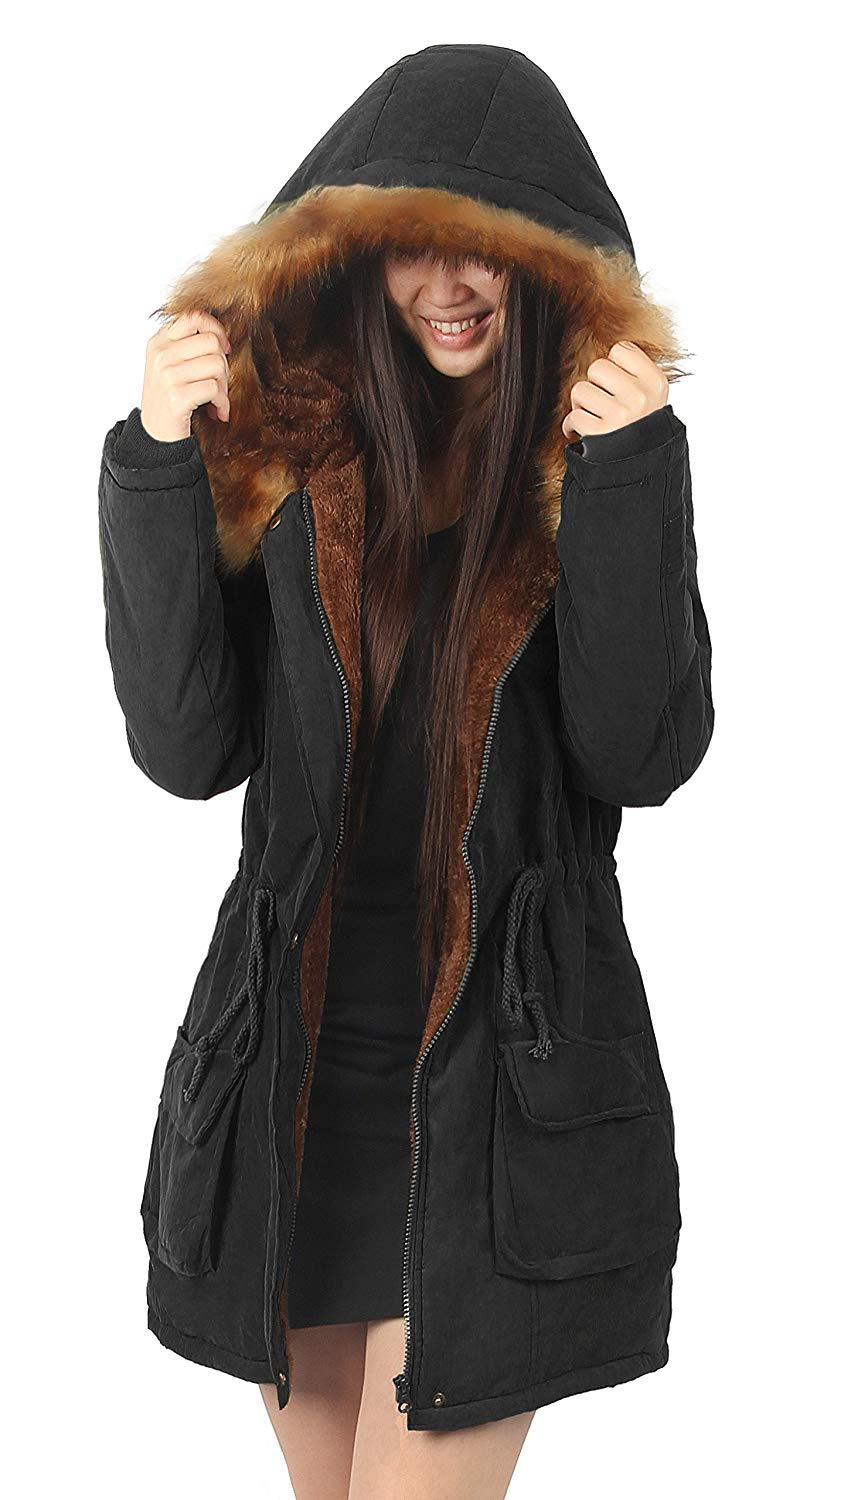 Fur Jackets amazon.com: ilovesia womens hooded warm coats parkas with faux fur jackets:  clothing HWTZBIT